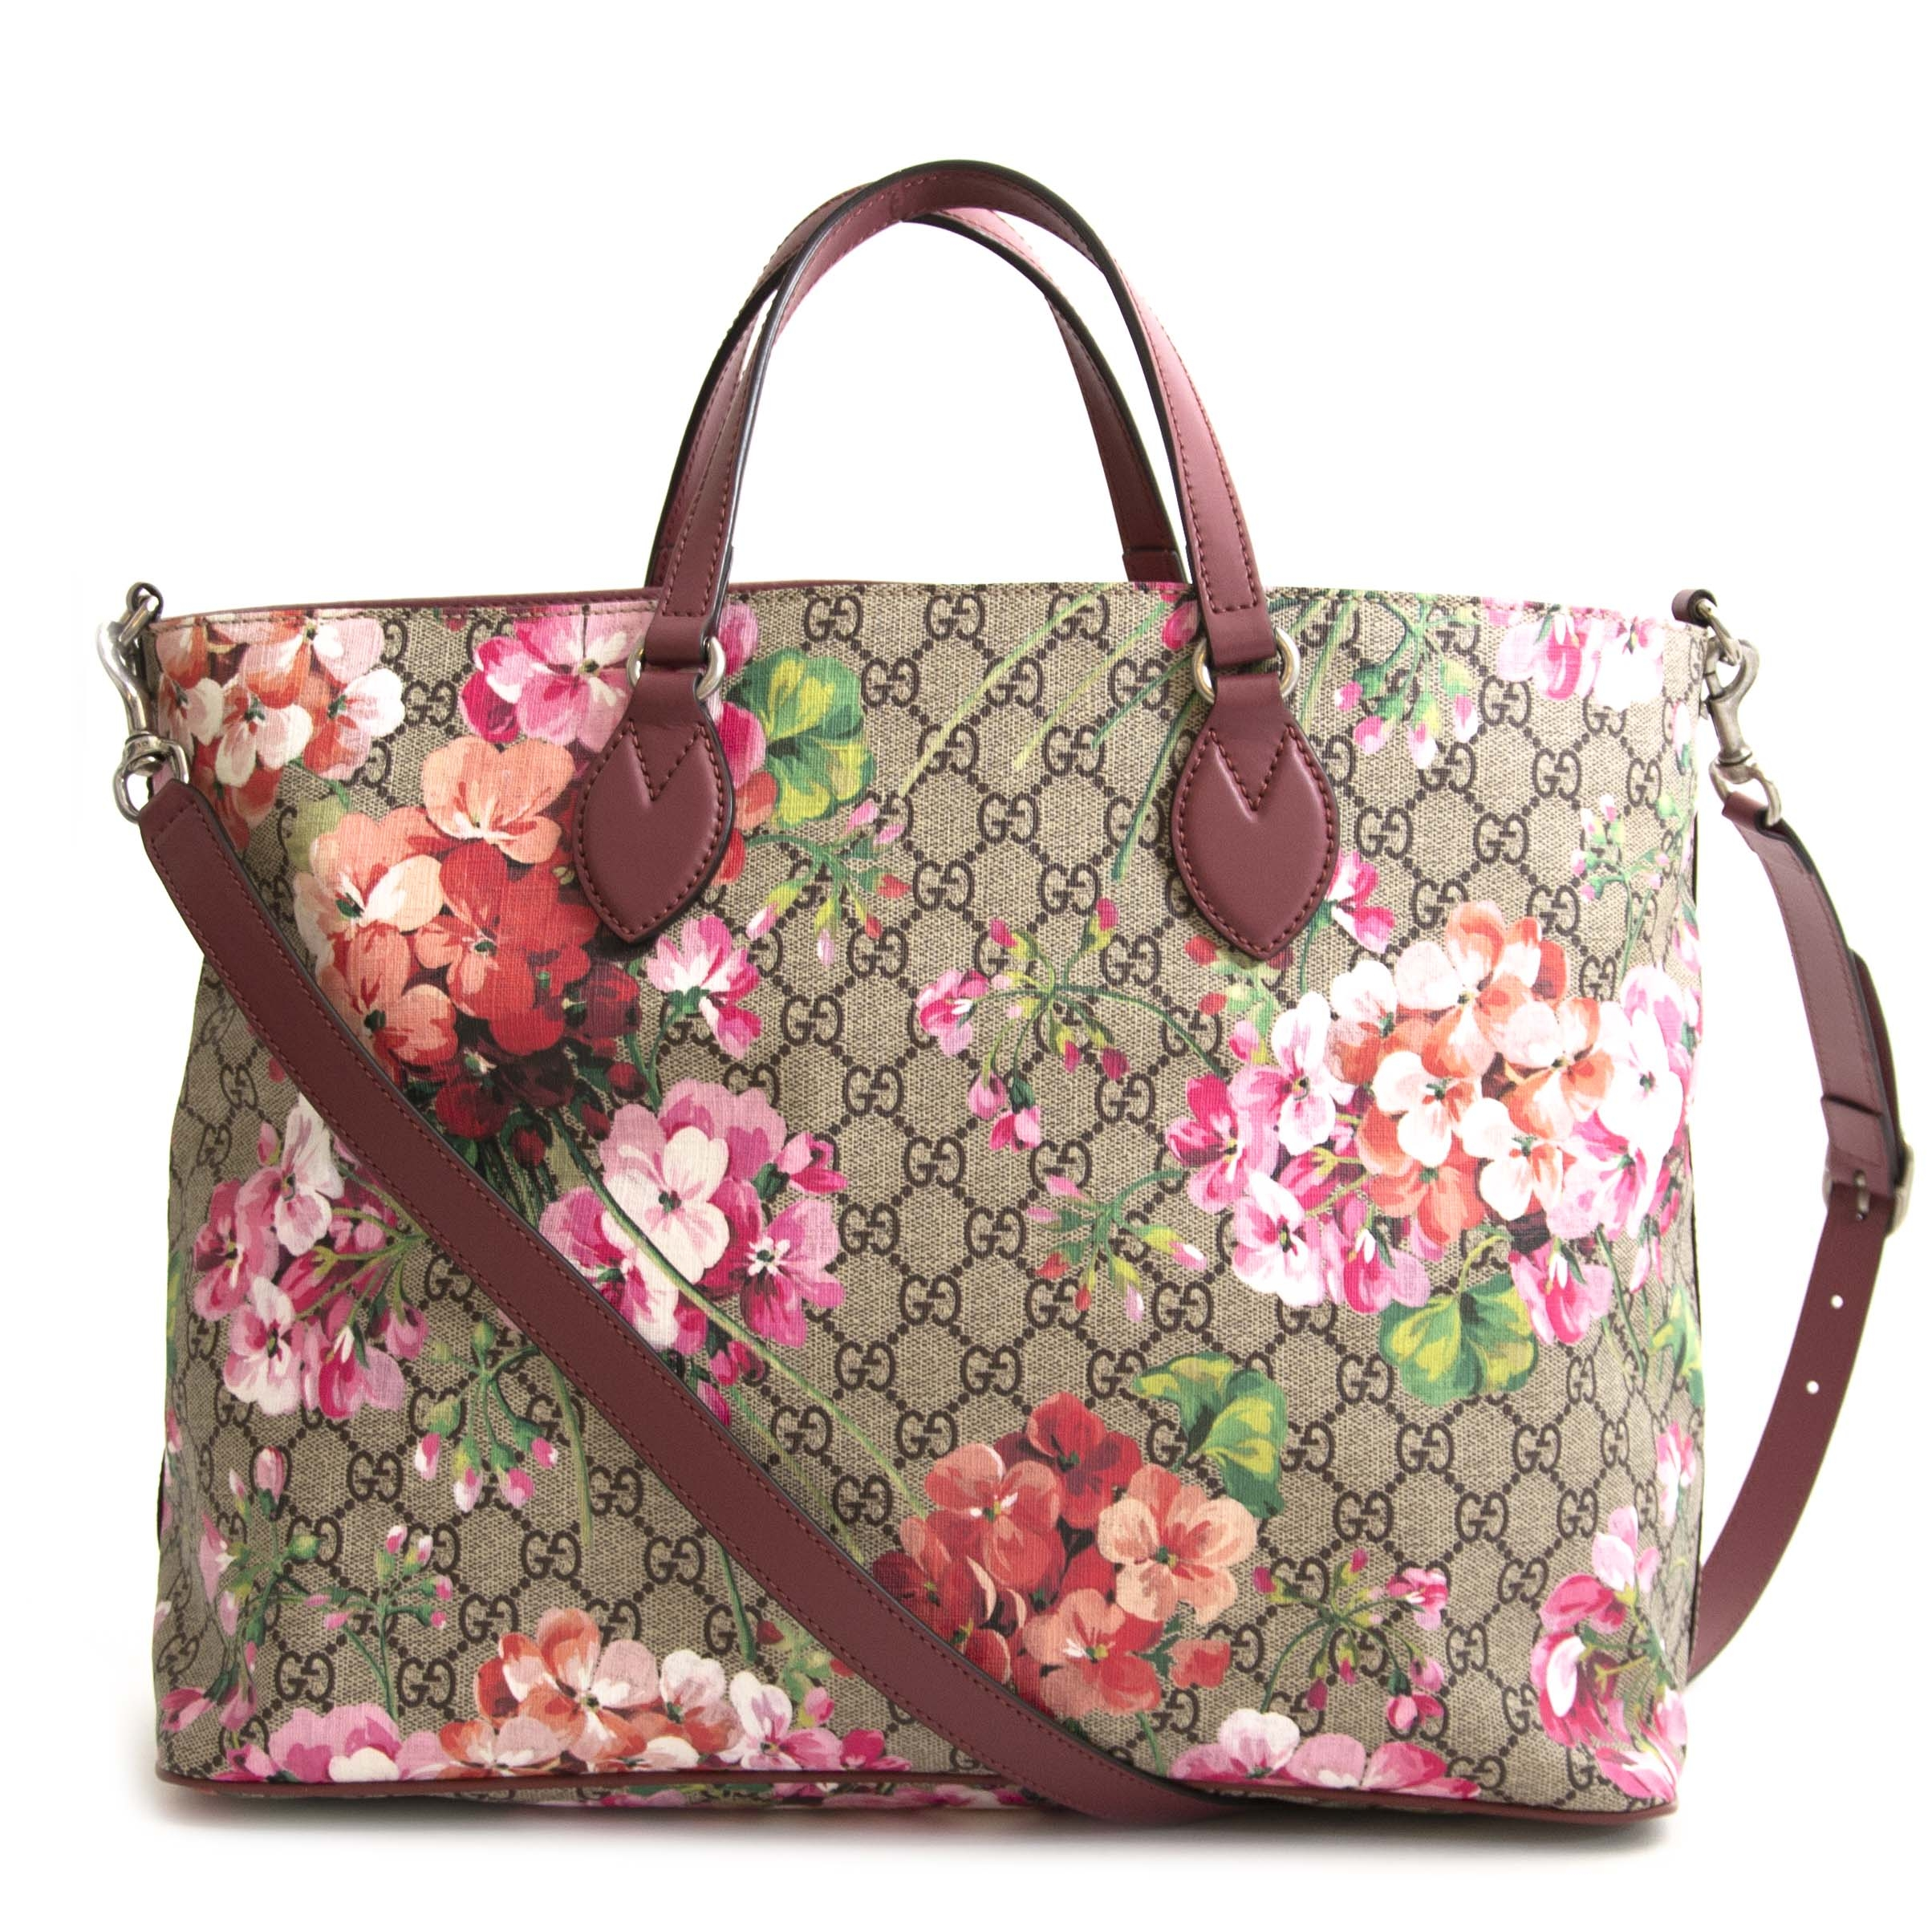 0695880fd4f Gucci Monogram Blooms Tote Authentic second hand vintage Gucci Monogram  Blooms Tote online shopping webshop LabelLOV